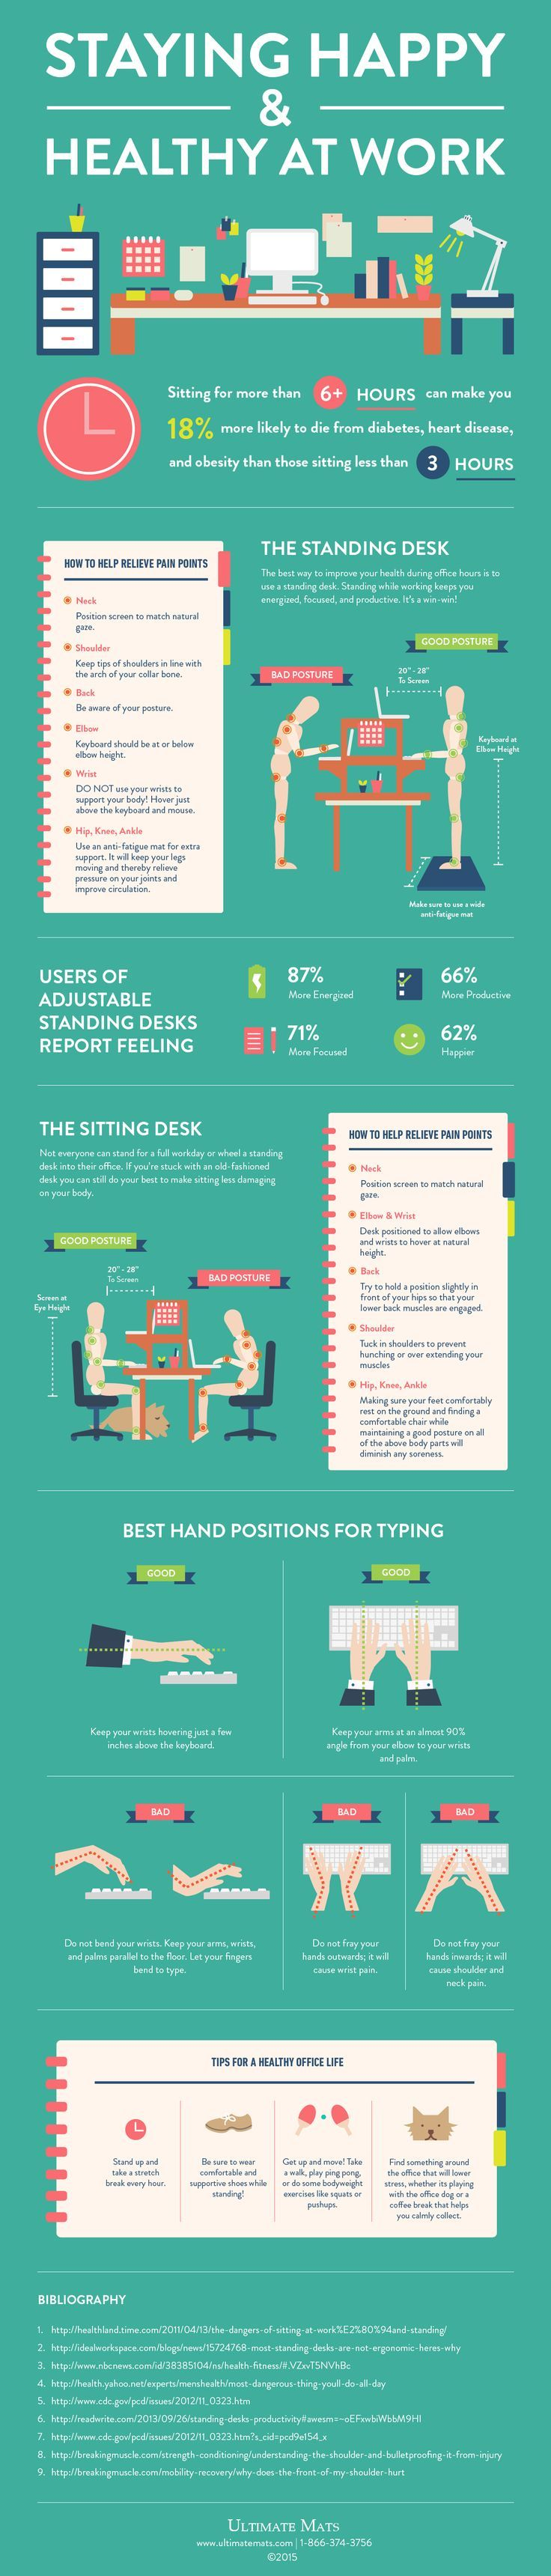 Stay healthy while working. Sitting can be detrimental to your health. Read on to know more. With the ZestDesk, working while standing has never been more hassle-free and easy. Learn more about this and get to pre-order by clicking here: https://www.zestdesk.com/